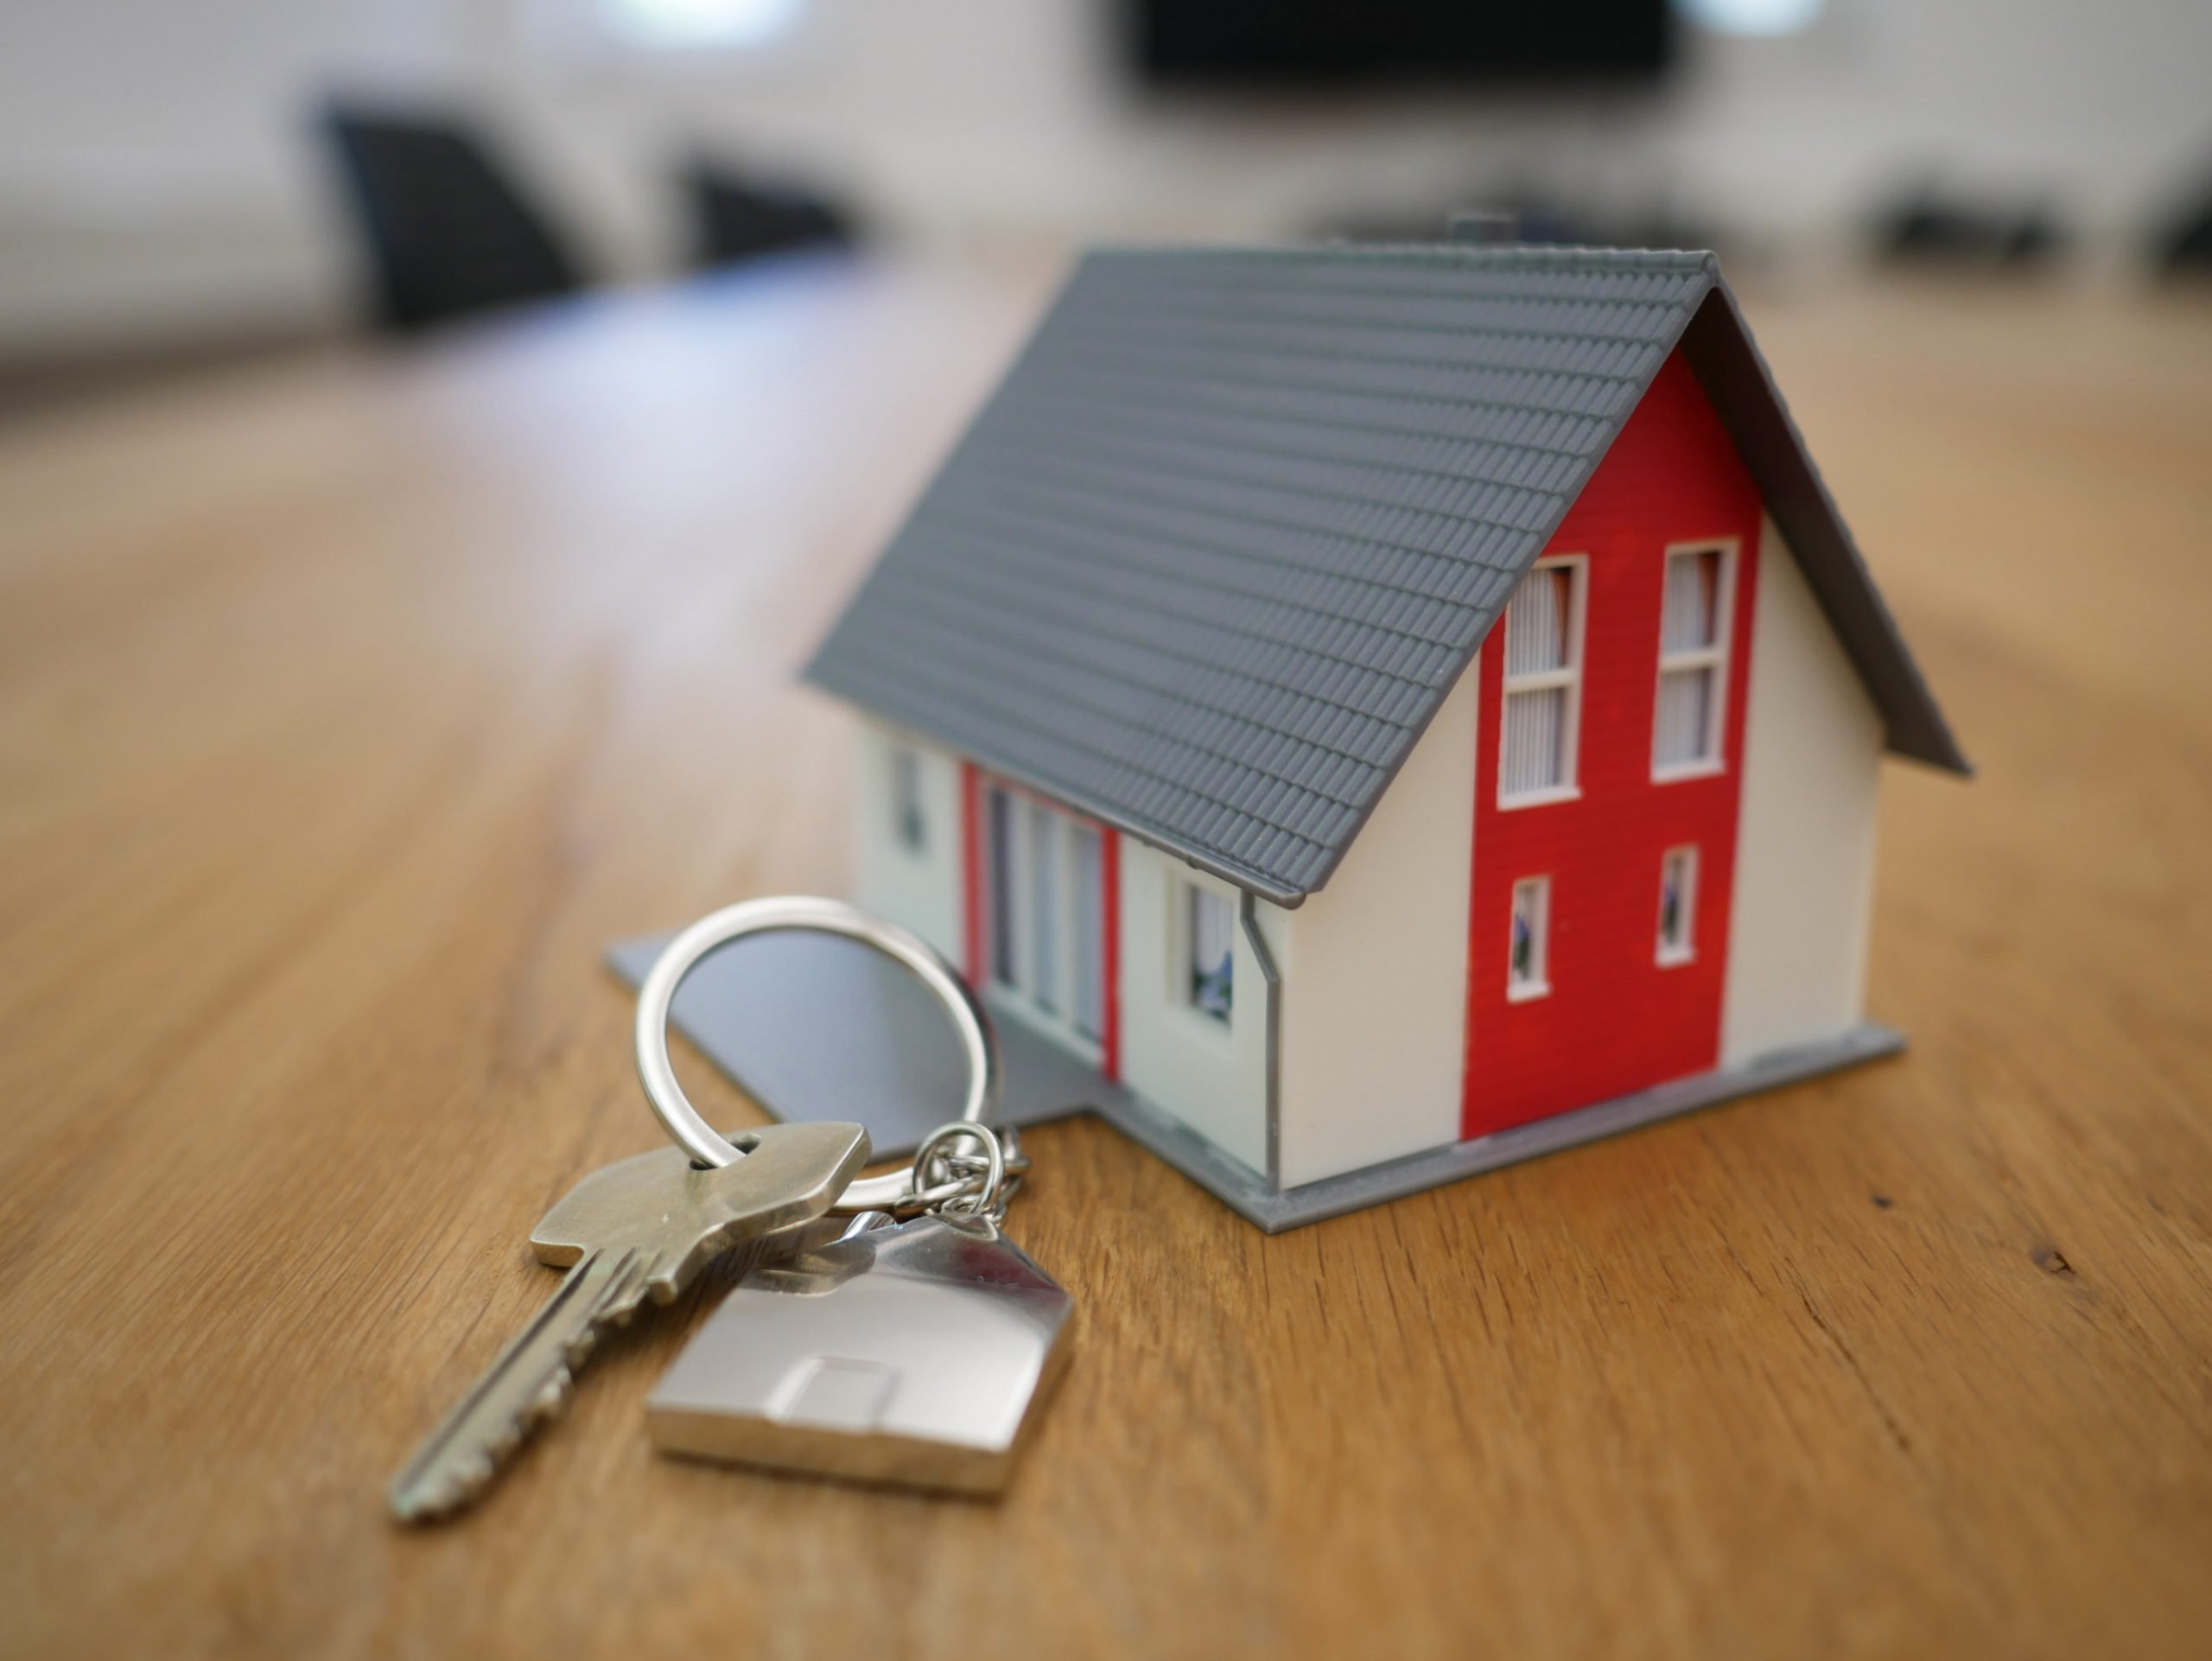 You are gambling with your families' future when you take out a home mortgage